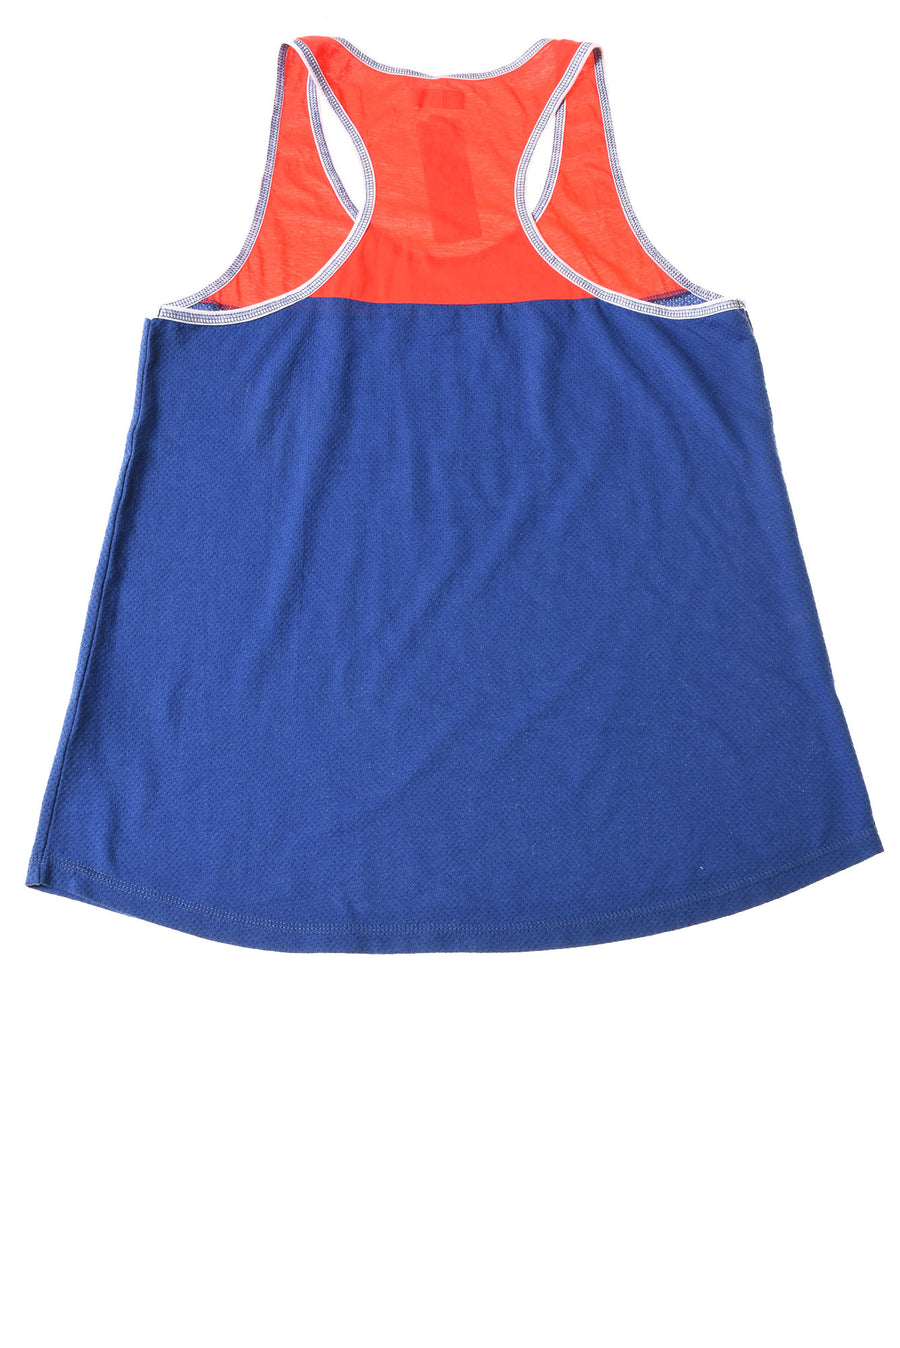 NEW NFL Team Apparel Women's Top Large Blue / Red